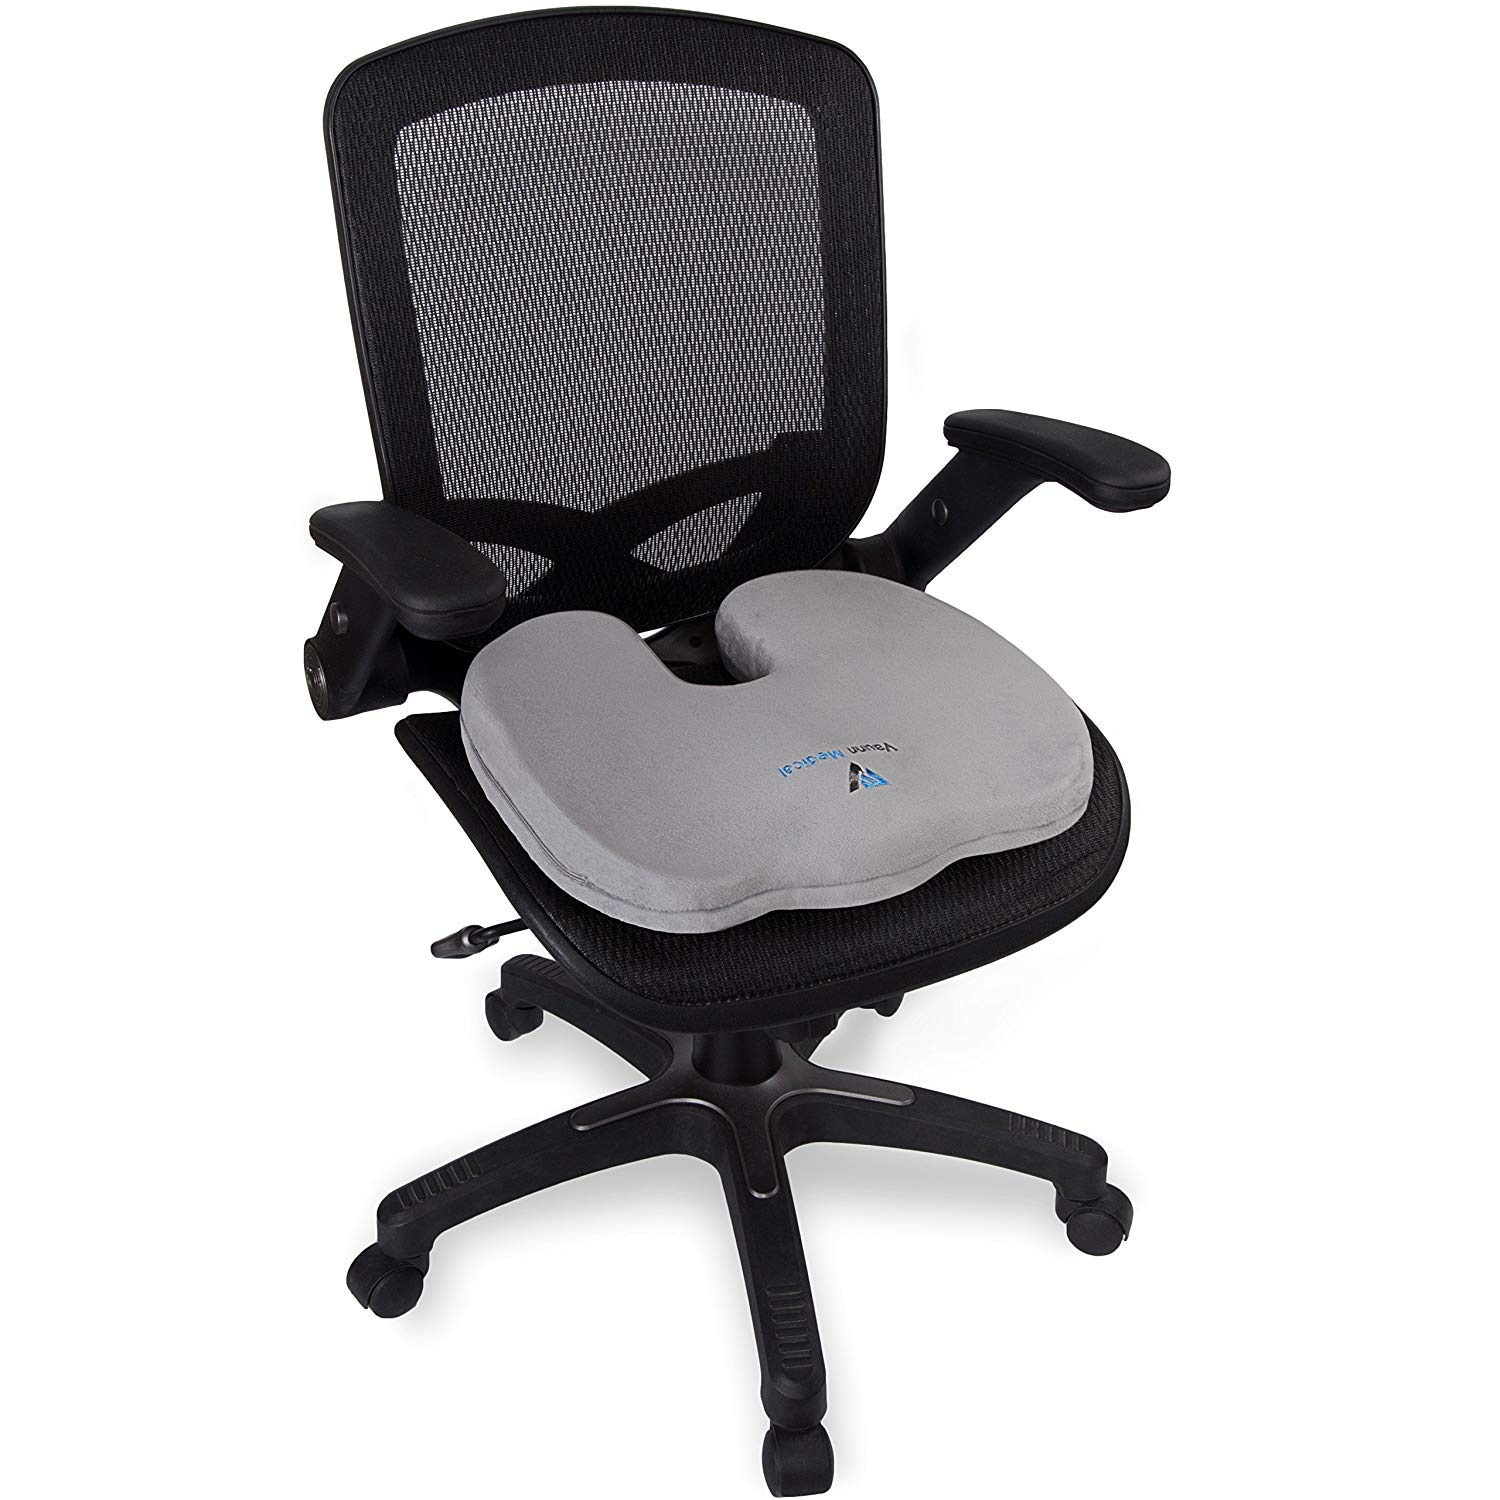 Amazon.com: Vaunn Medical Firm Seat Cushion - Cojín para ...